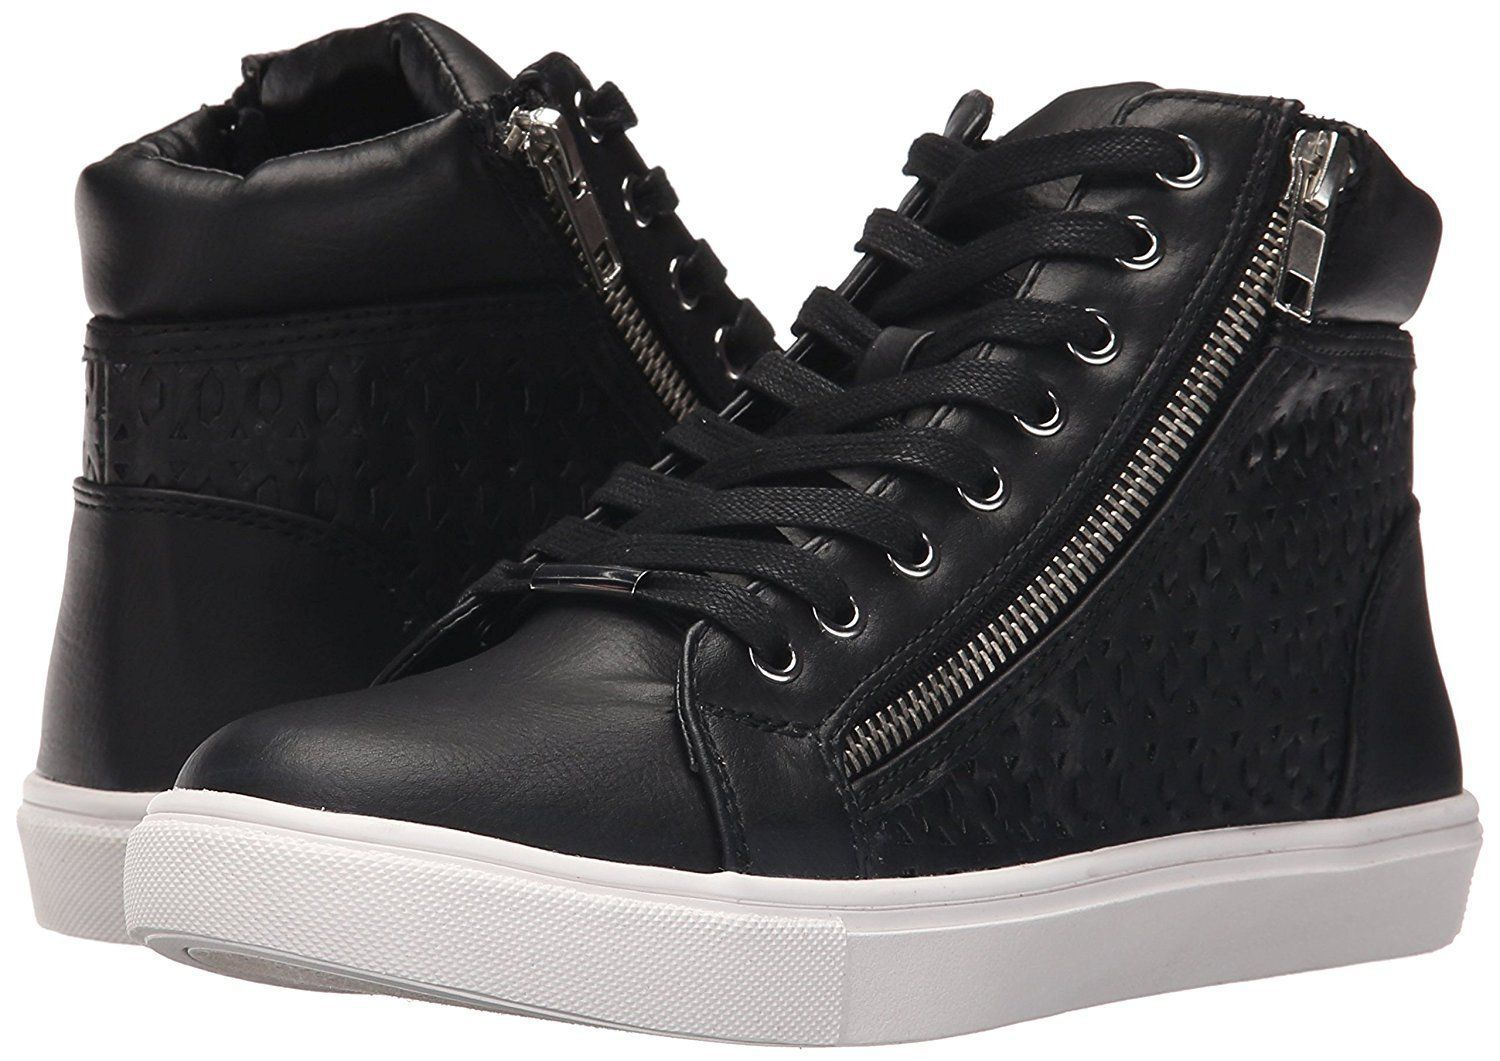 STEVE MADDEN women's EIRIS High-Top FASHION SNEAKER SHOES BLACK Leather  size 9.5